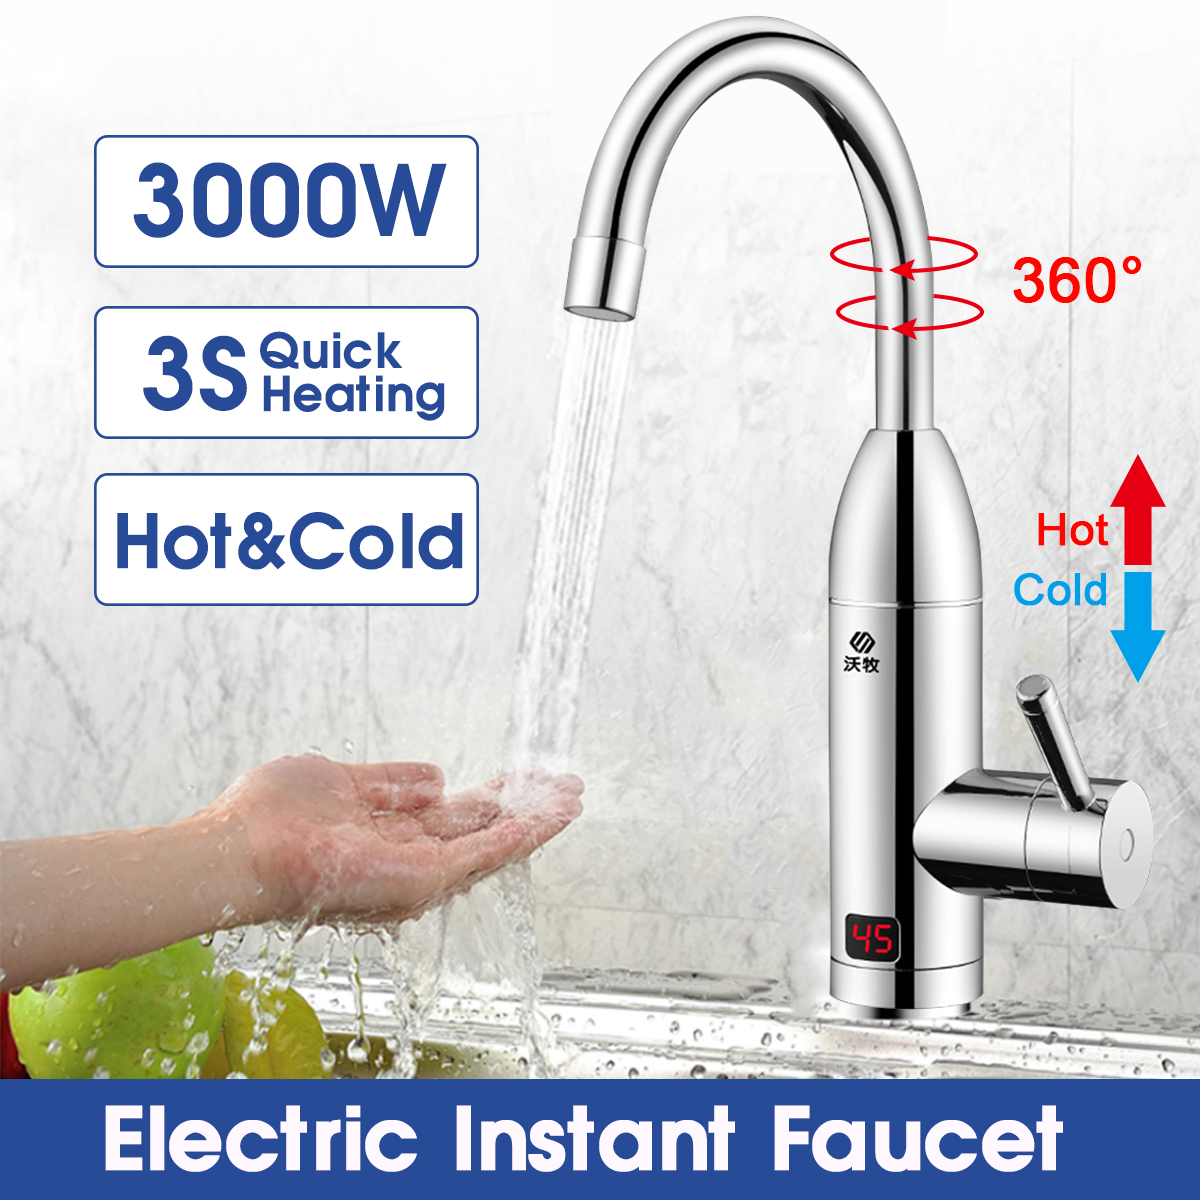 Electric Faucet Instant Water Heater Tap Faucet Heater Heating Faucet Tankless Instantaneous Water Heater Kitchen Faucet Kitchen